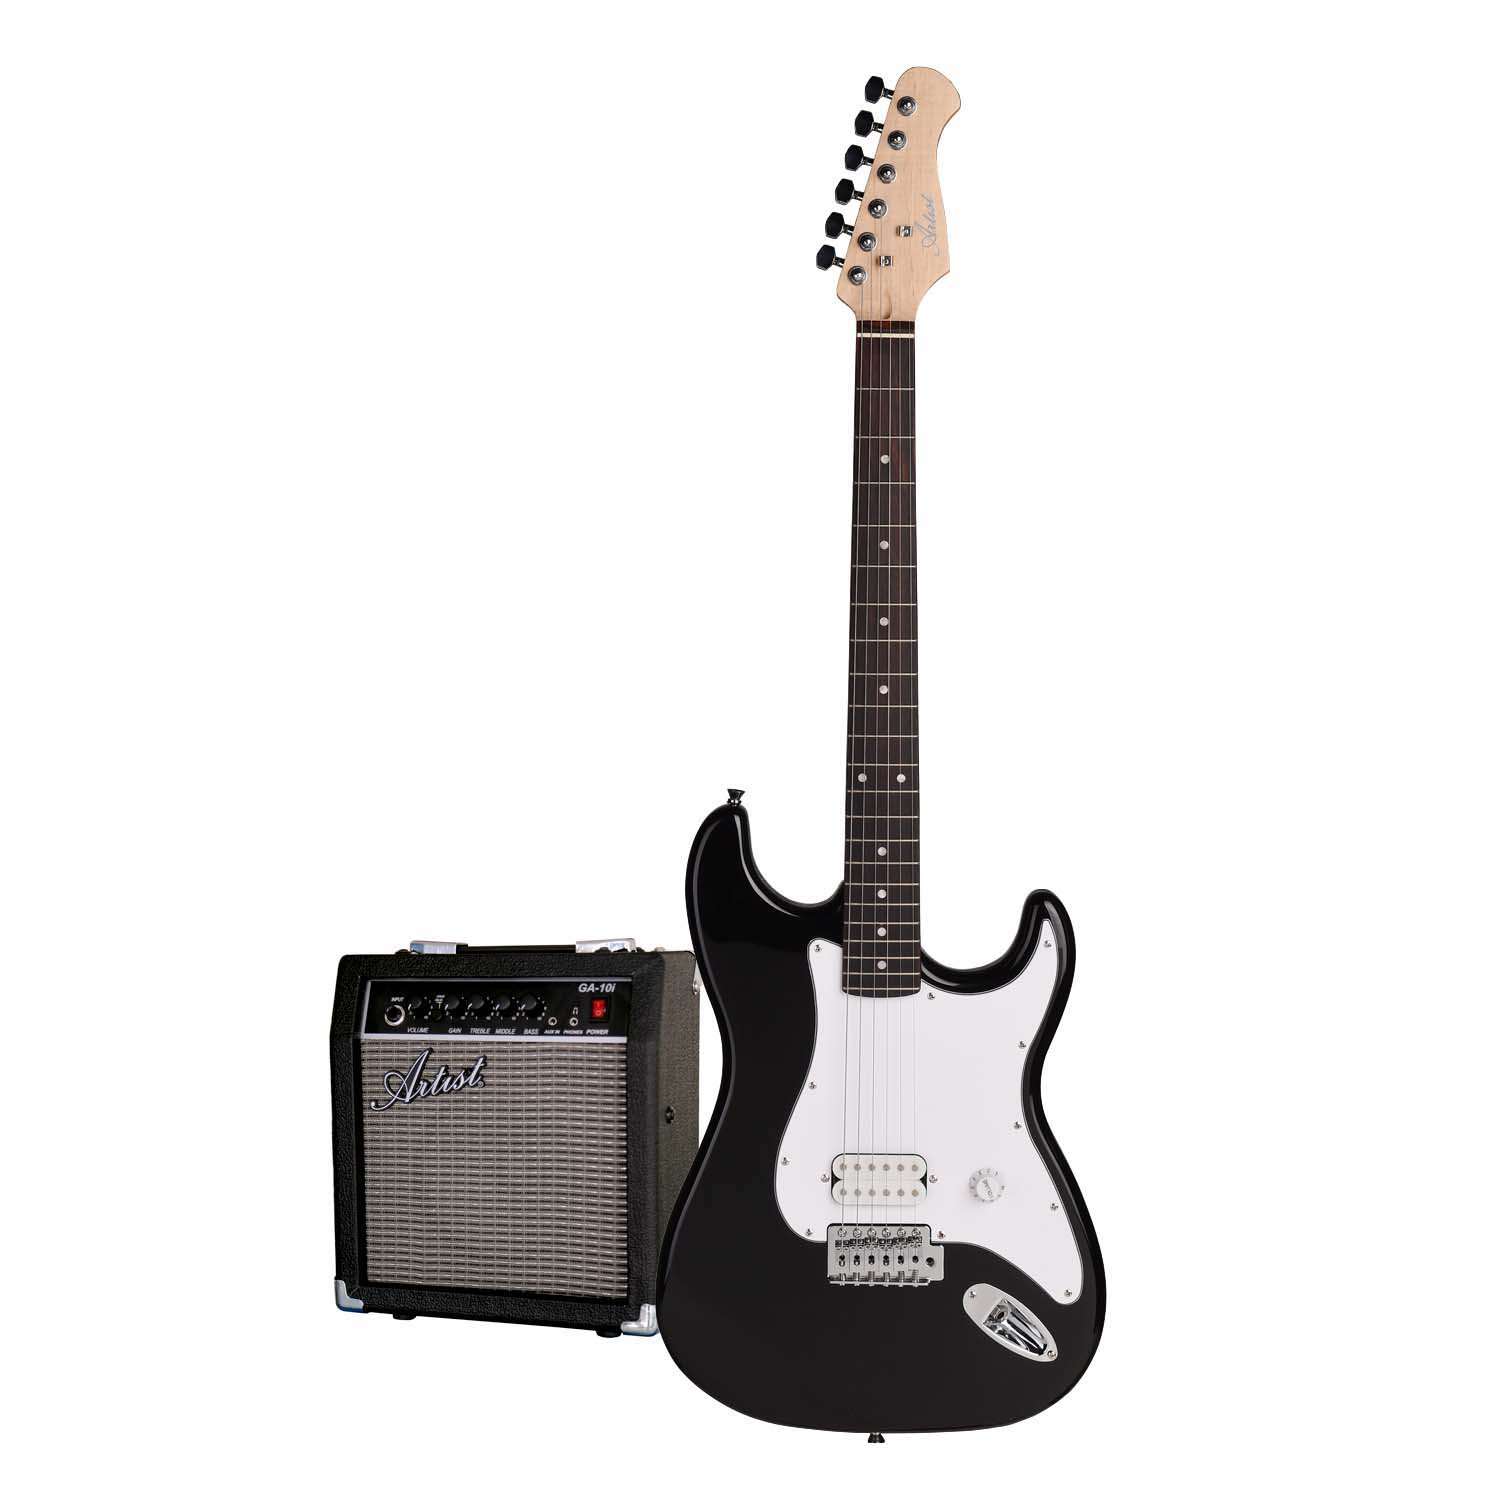 artist eb2 budget full sized st style electric guitar black amp. Black Bedroom Furniture Sets. Home Design Ideas